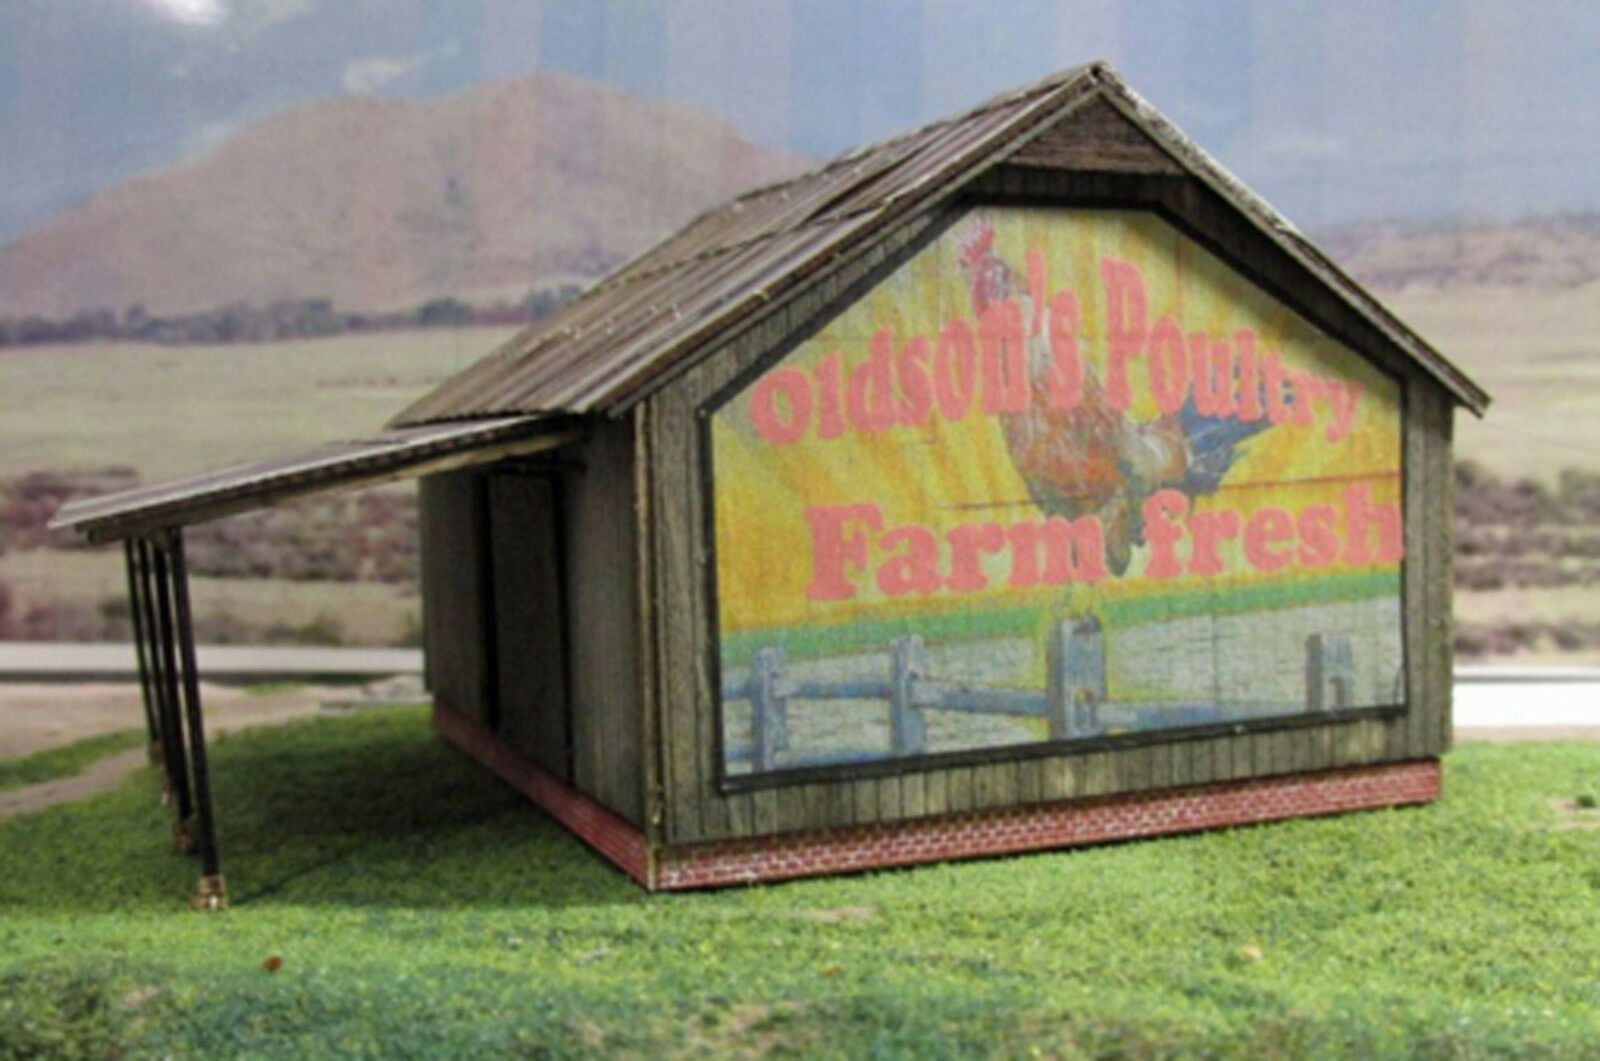 COUNTRY BARN HO Model Railroad Structure Unpainted Wood Laser Kit RSL2070